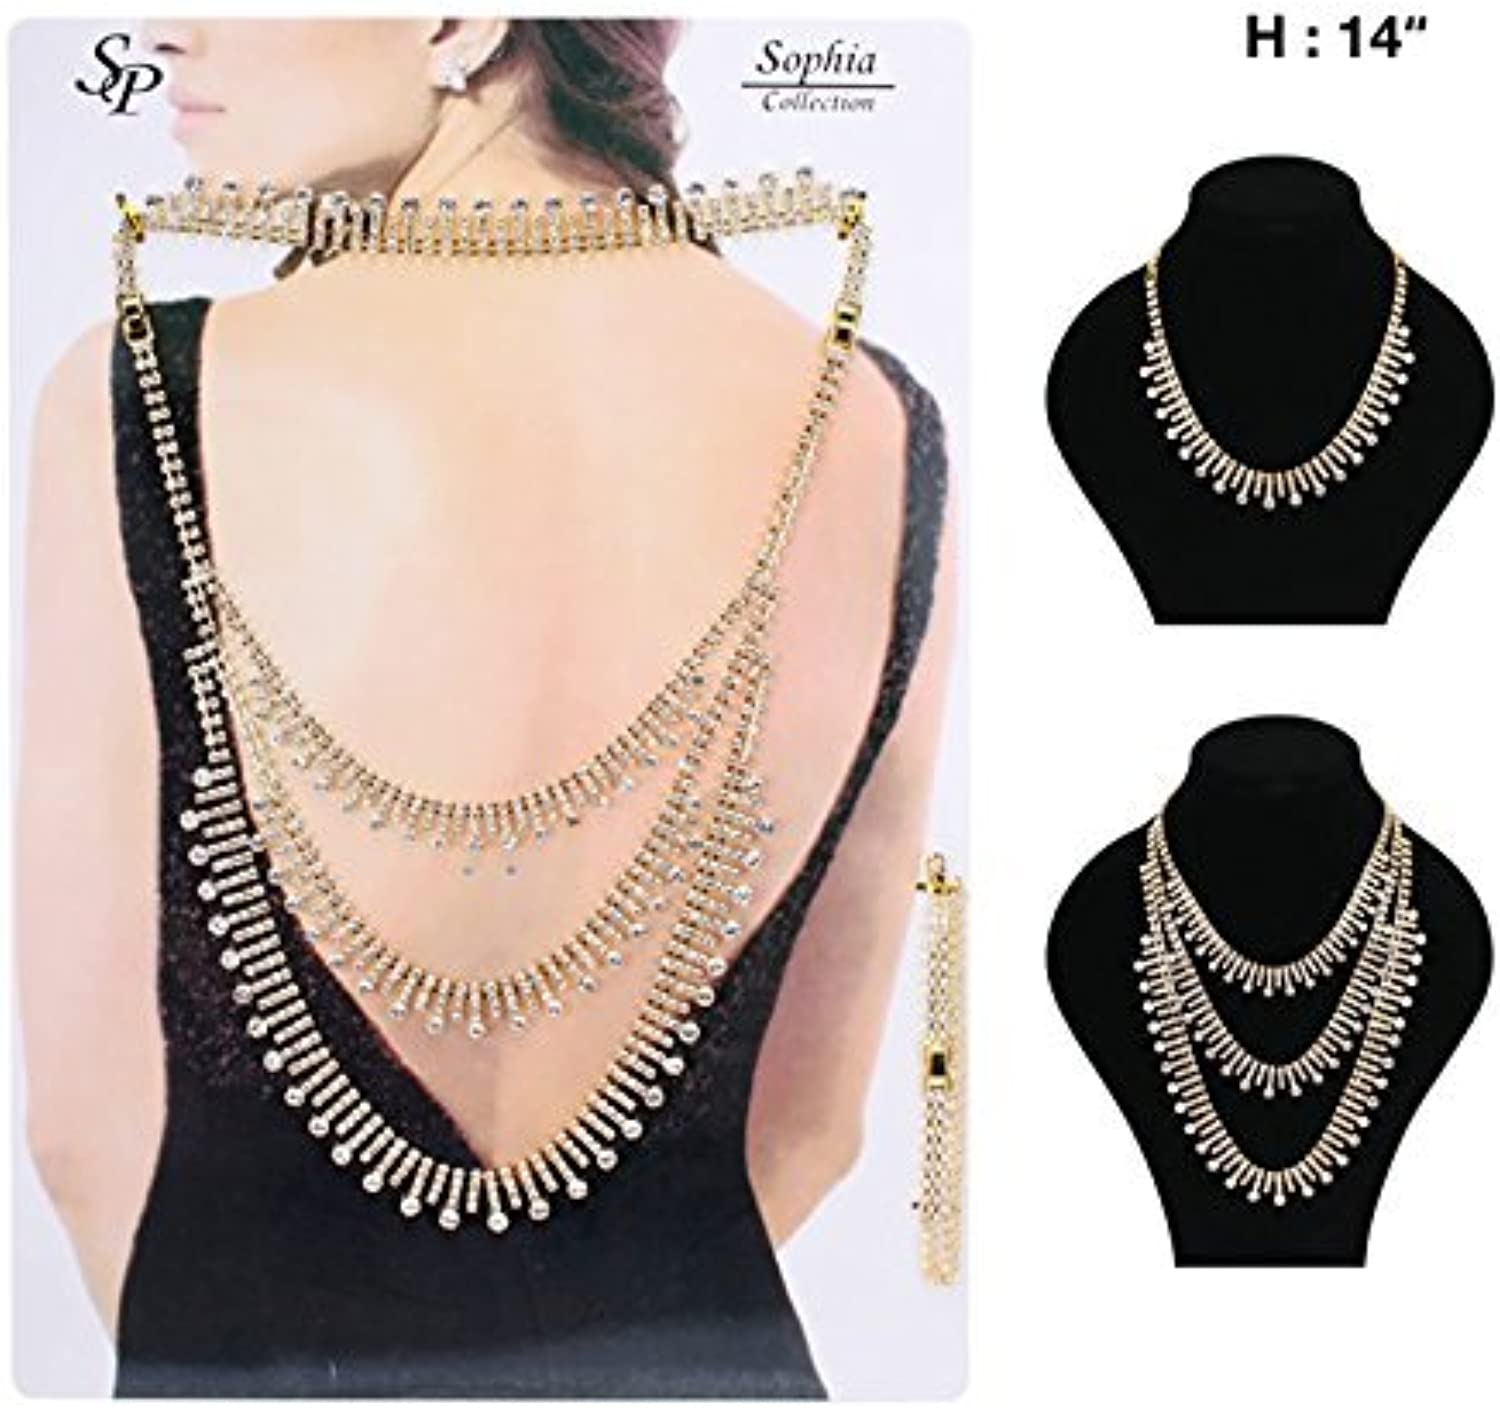 3 Strand Round Stone Accent Pave 2 Piece 3 Way Back Chain Necklace Jewelry Set in goldTone